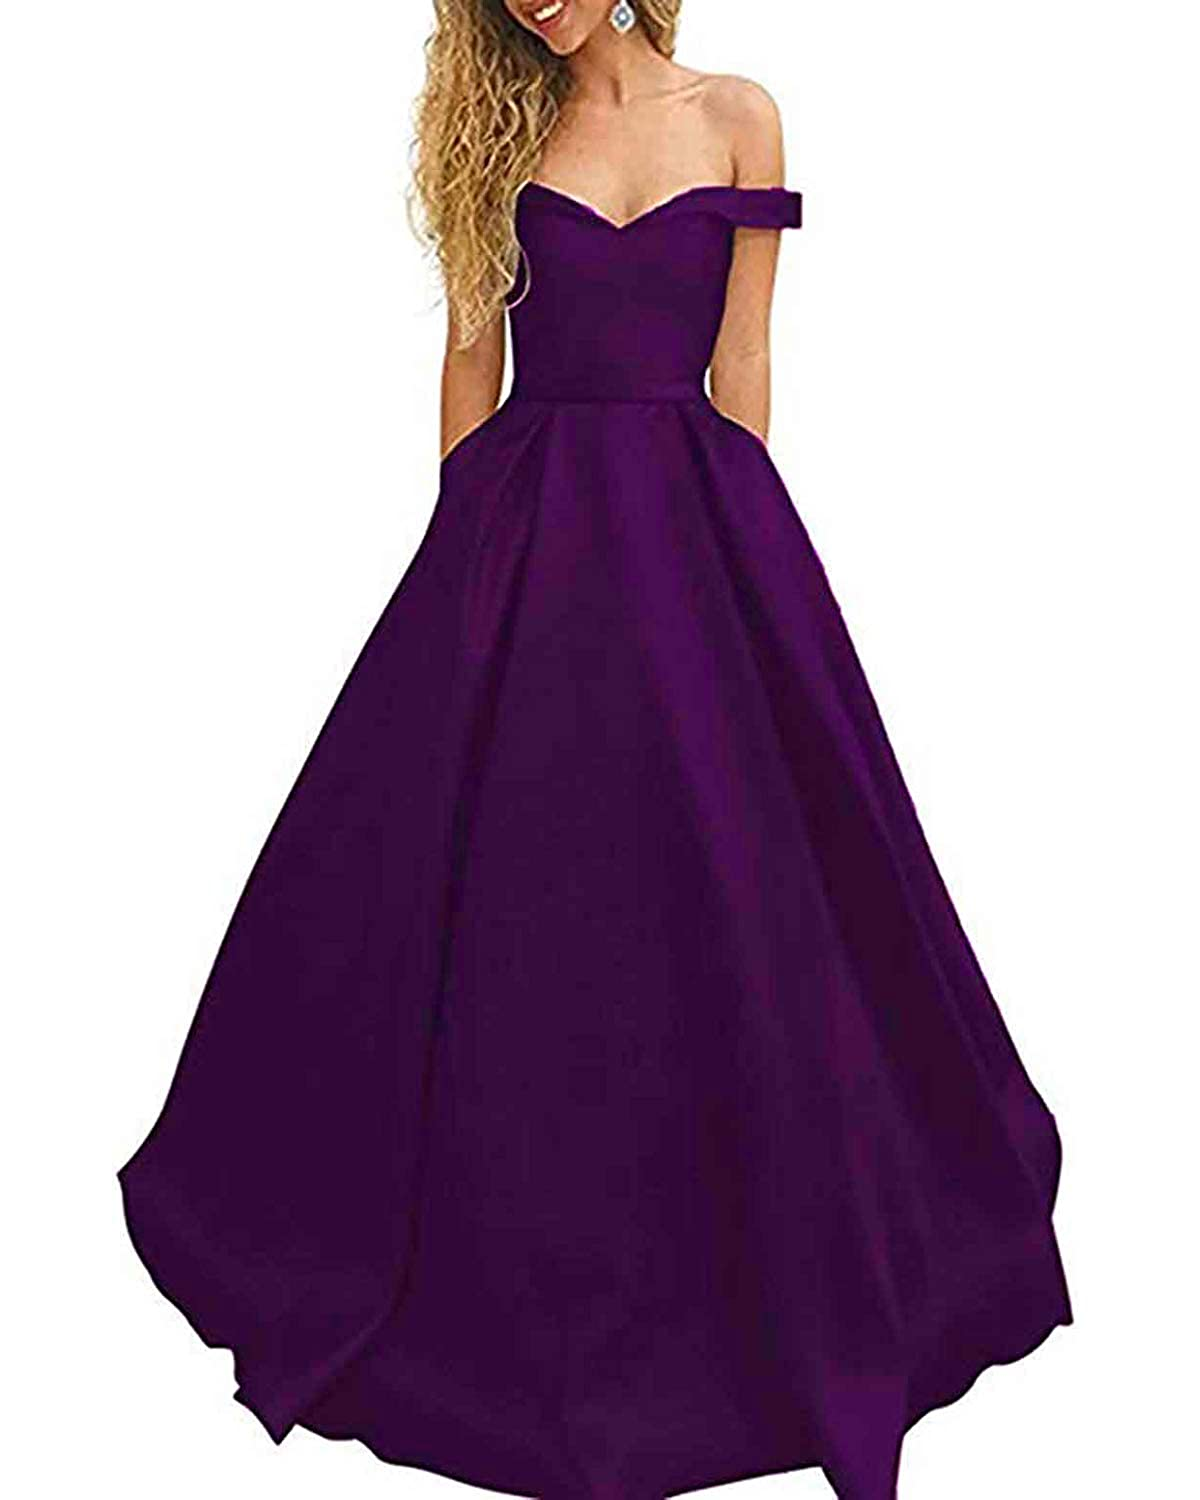 Dark Purple WHLWHL OffTheShoulder Long Prom Dress Party Gowns for Women 2019 Evening with Pockets